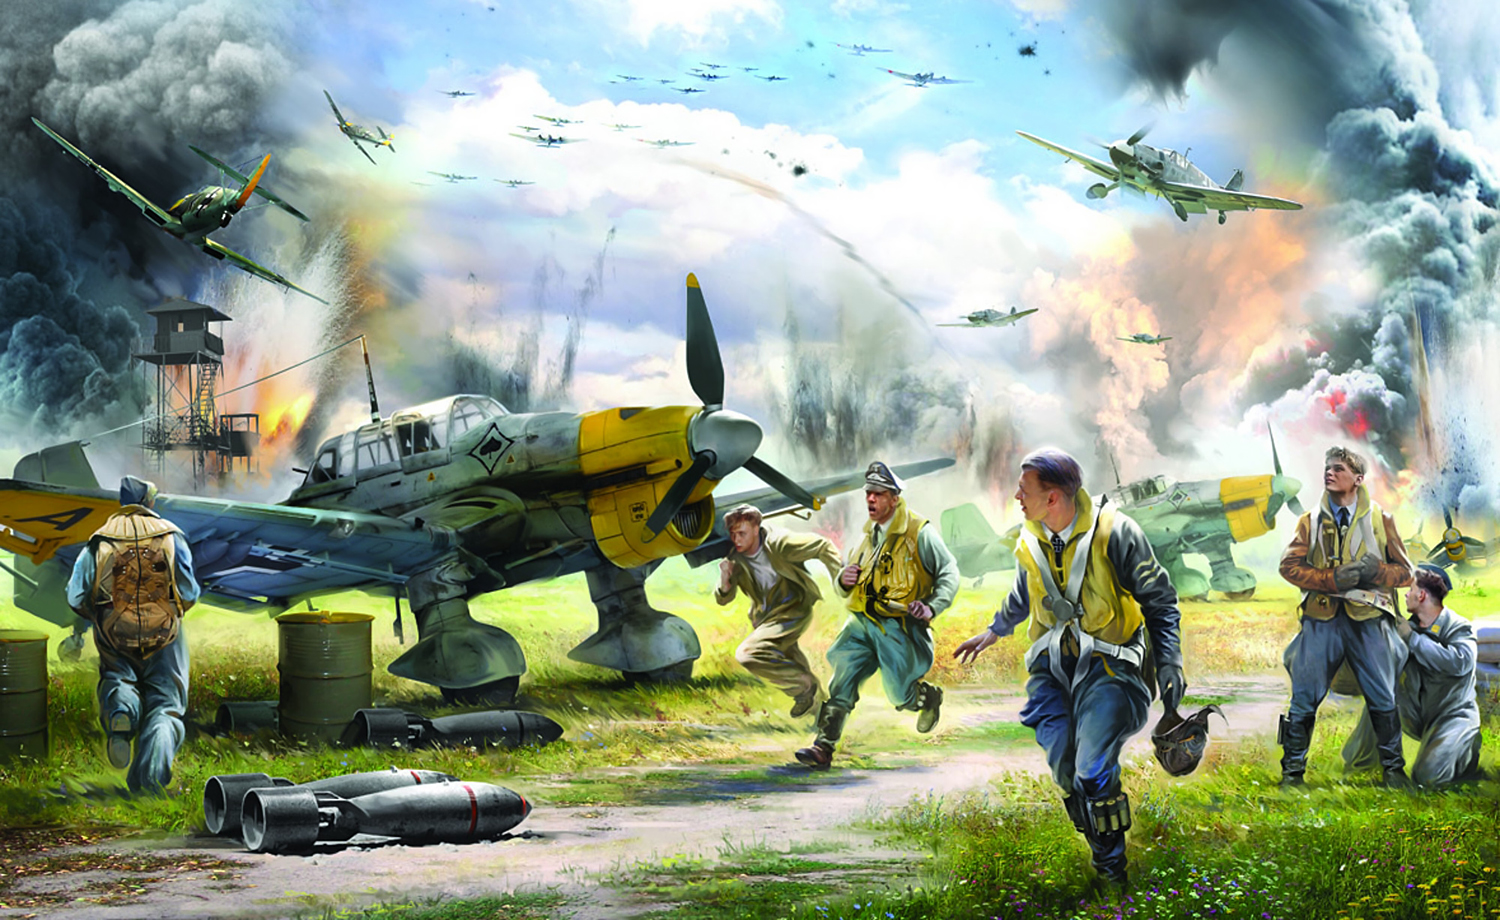 http://warwall.ru/Arts/4/Wallpaper_4005_Battle_German_Aerodrome.jpg